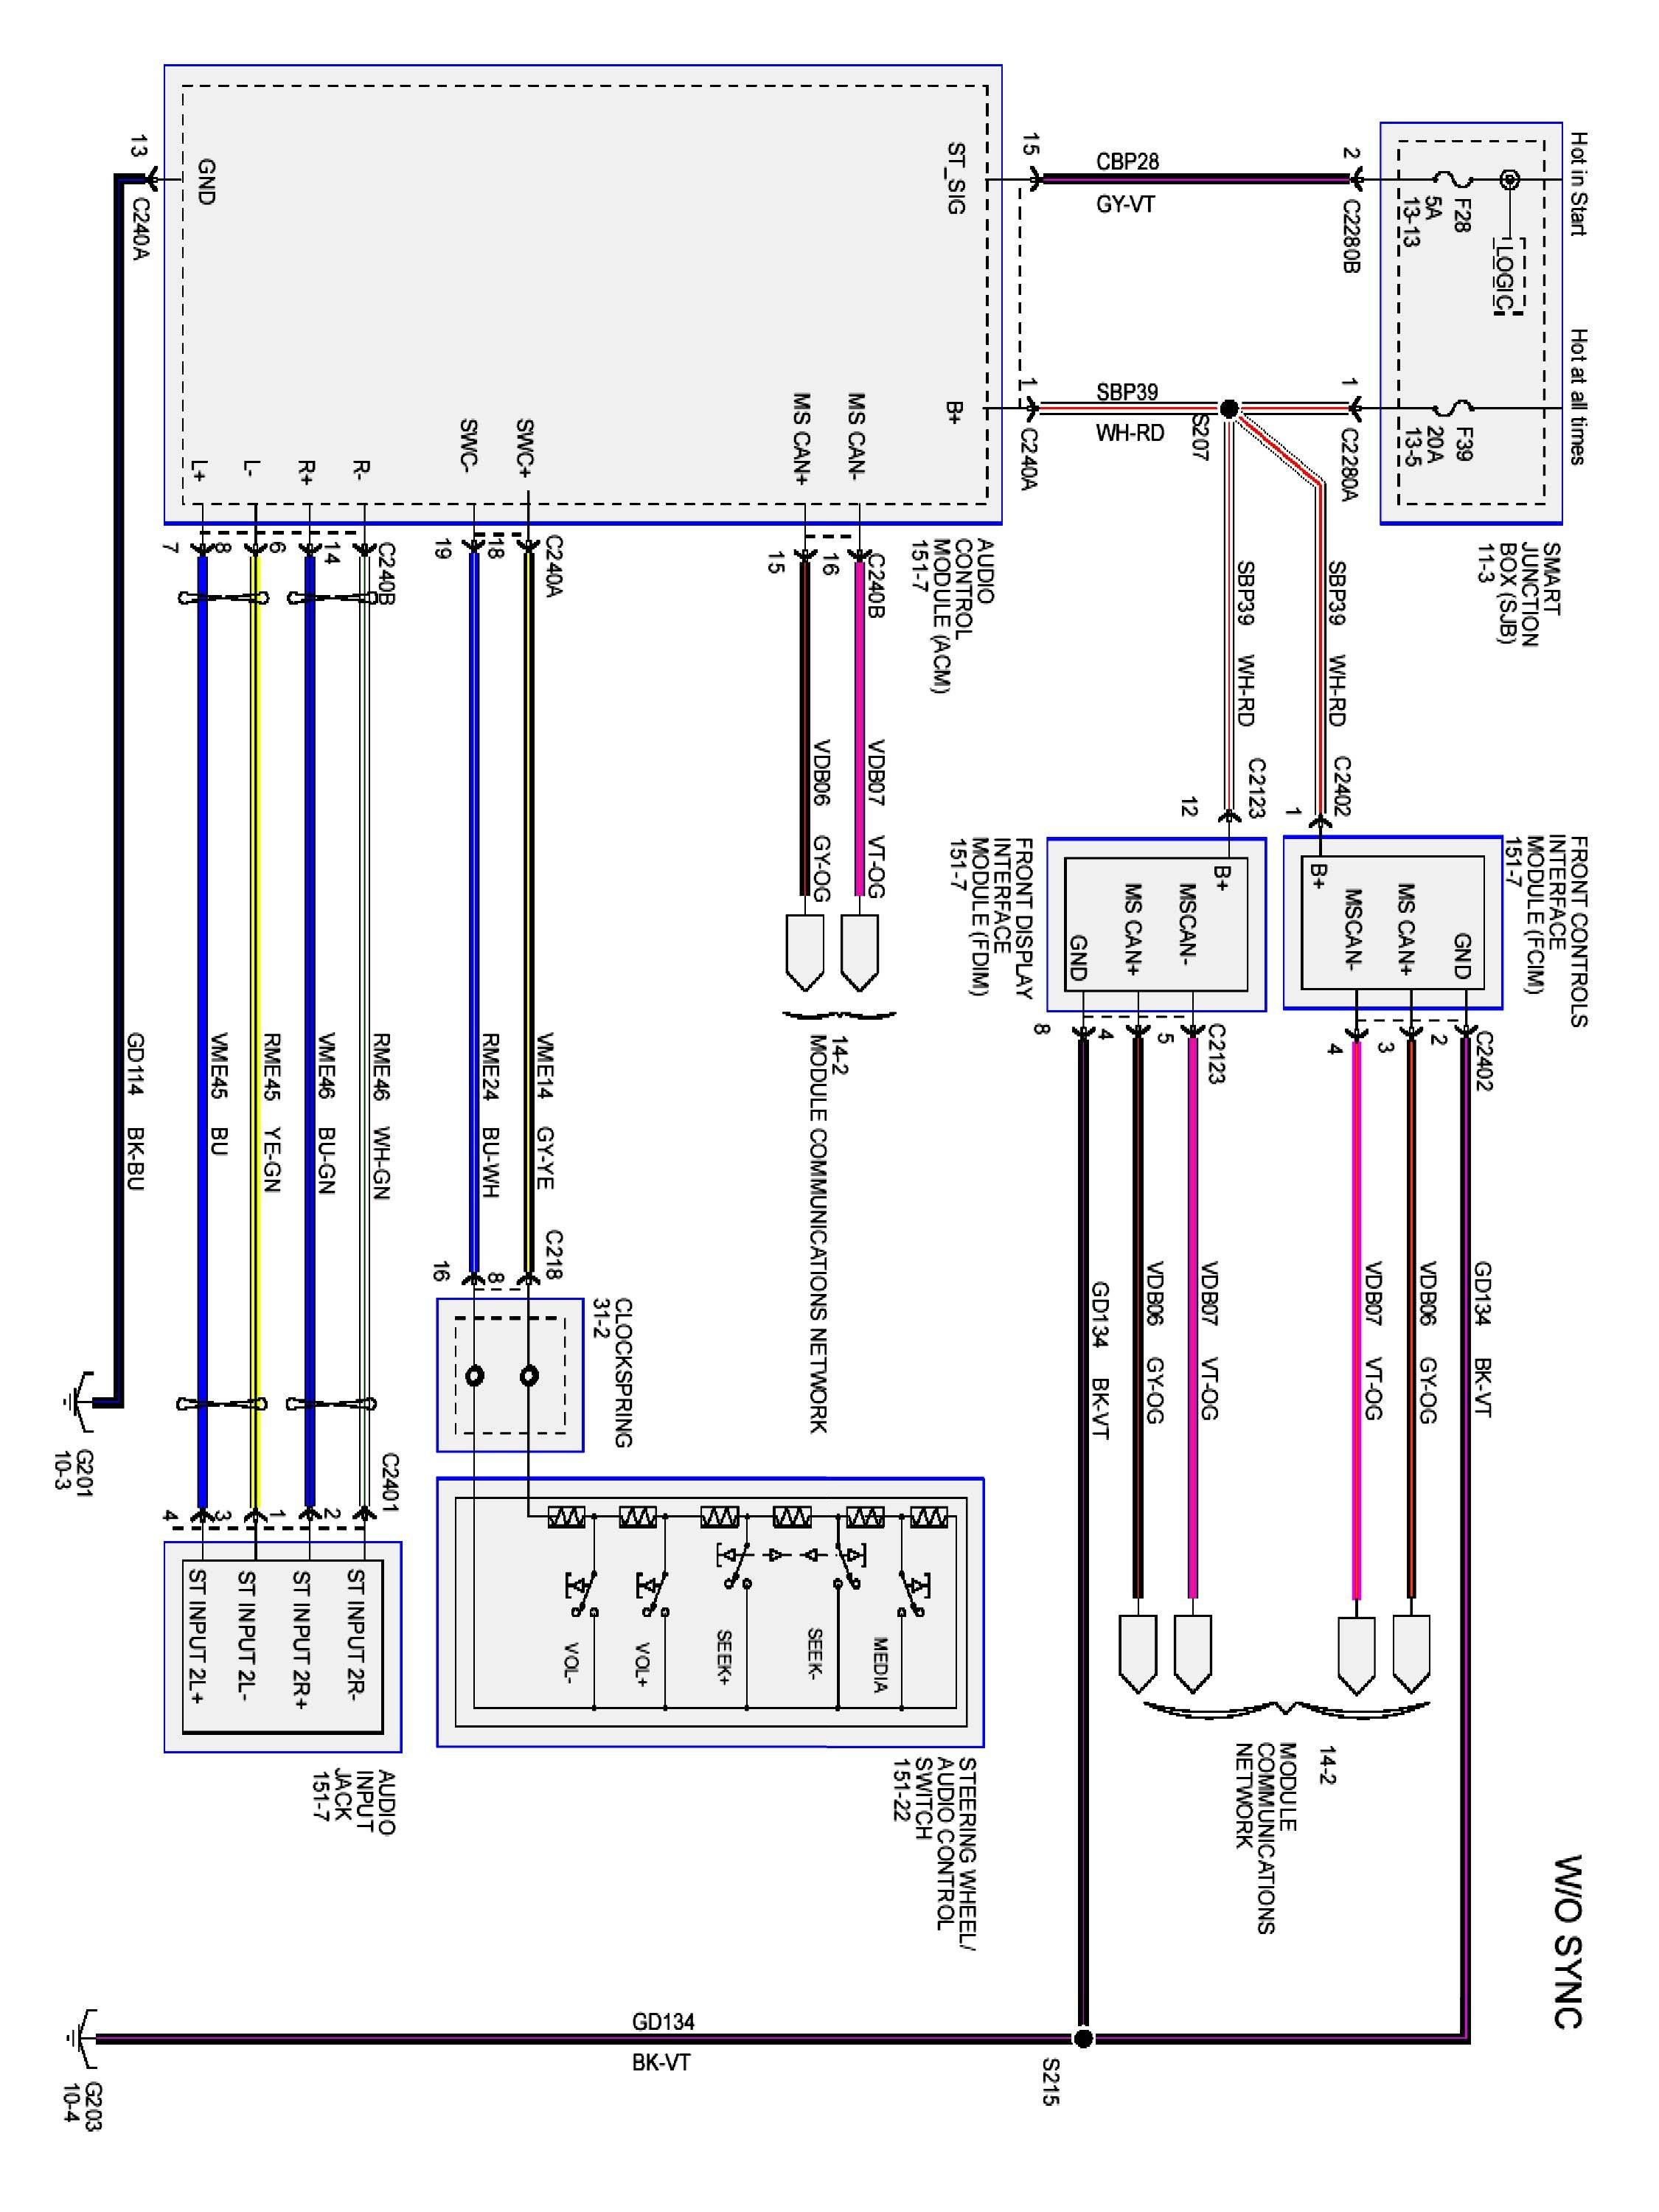 2000 Ford Focus Radio Wire Diagram | FREE WIRINGS Crowd | Speakers Wire Diagram 2007 Ford Mustang |  | Baloolandia